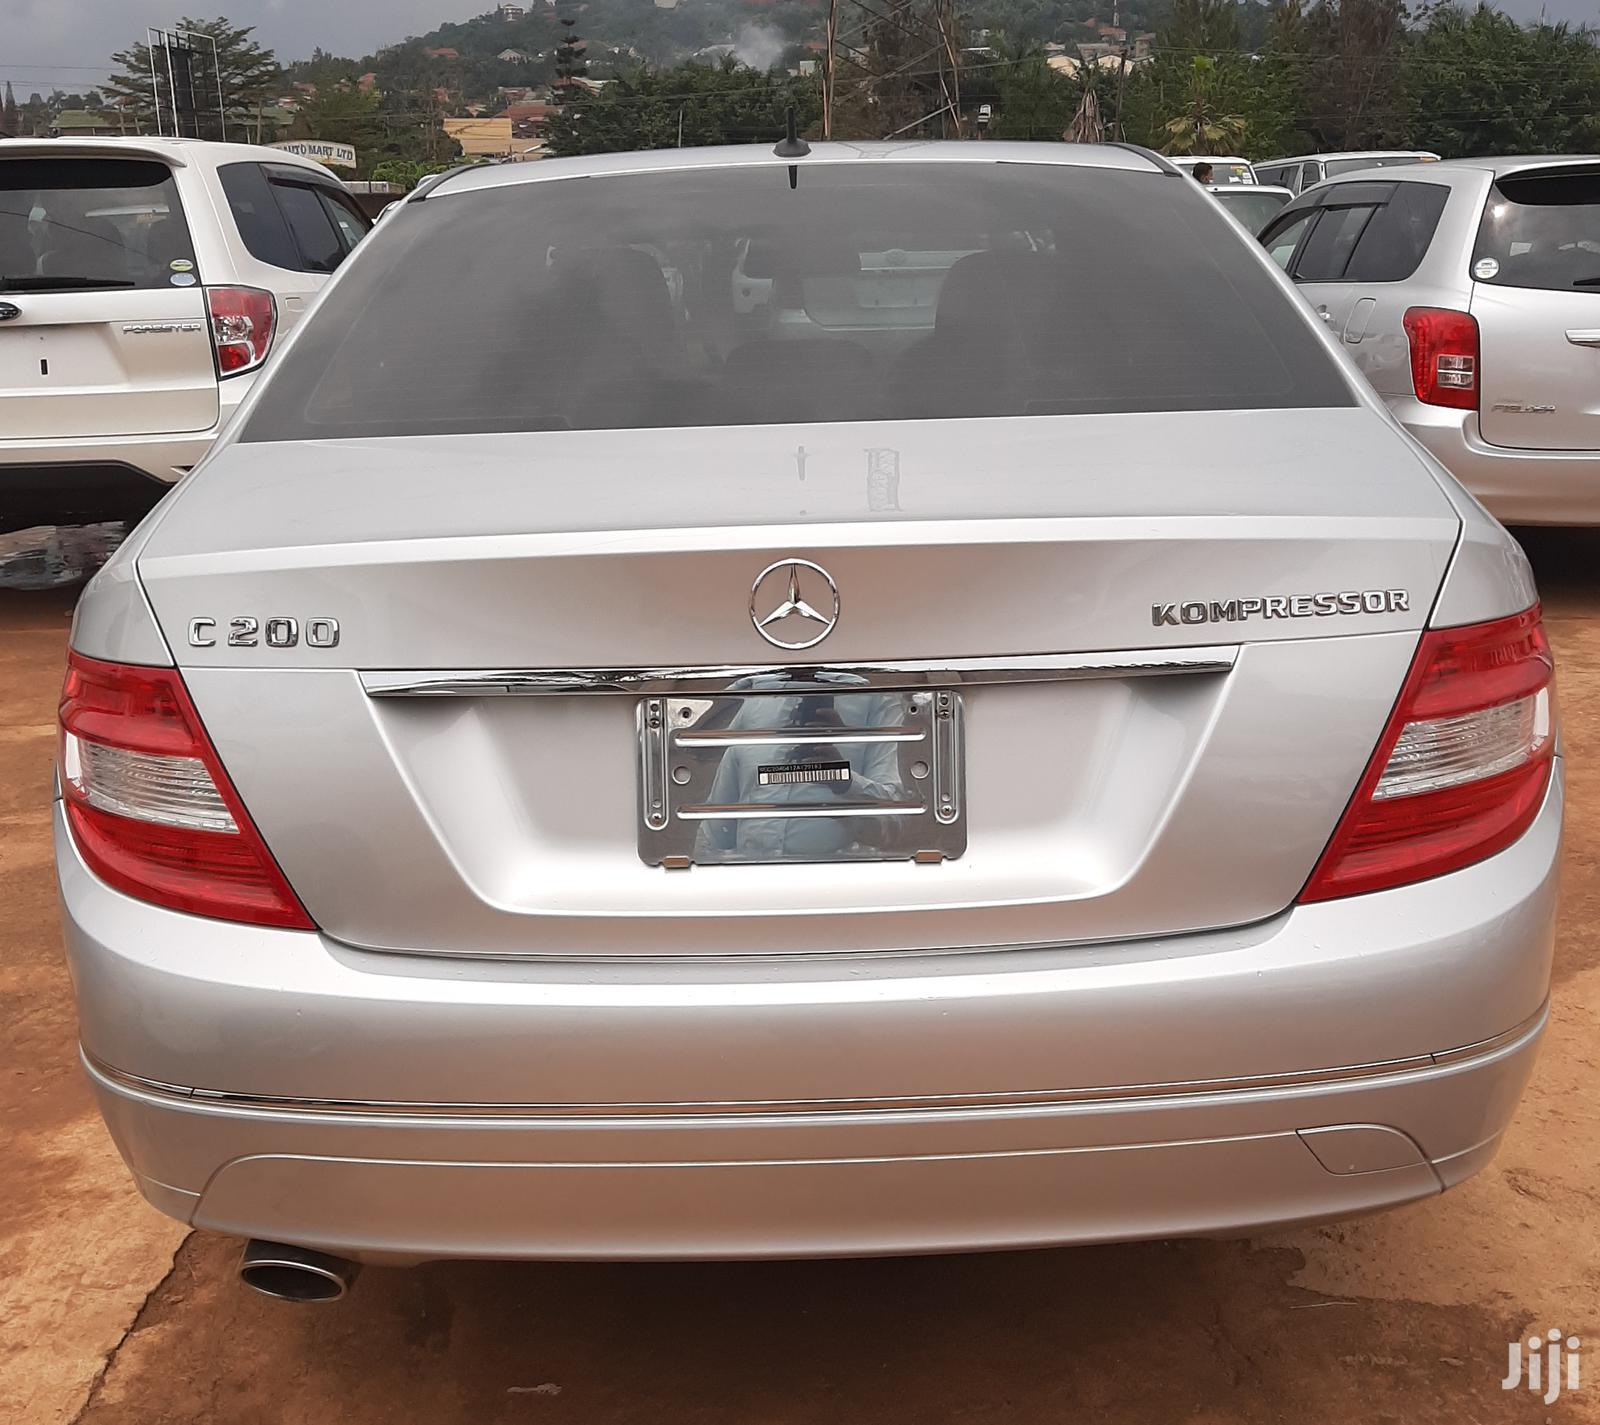 Mercedes-Benz C200 2008 Silver | Cars for sale in Kampala, Central Region, Uganda